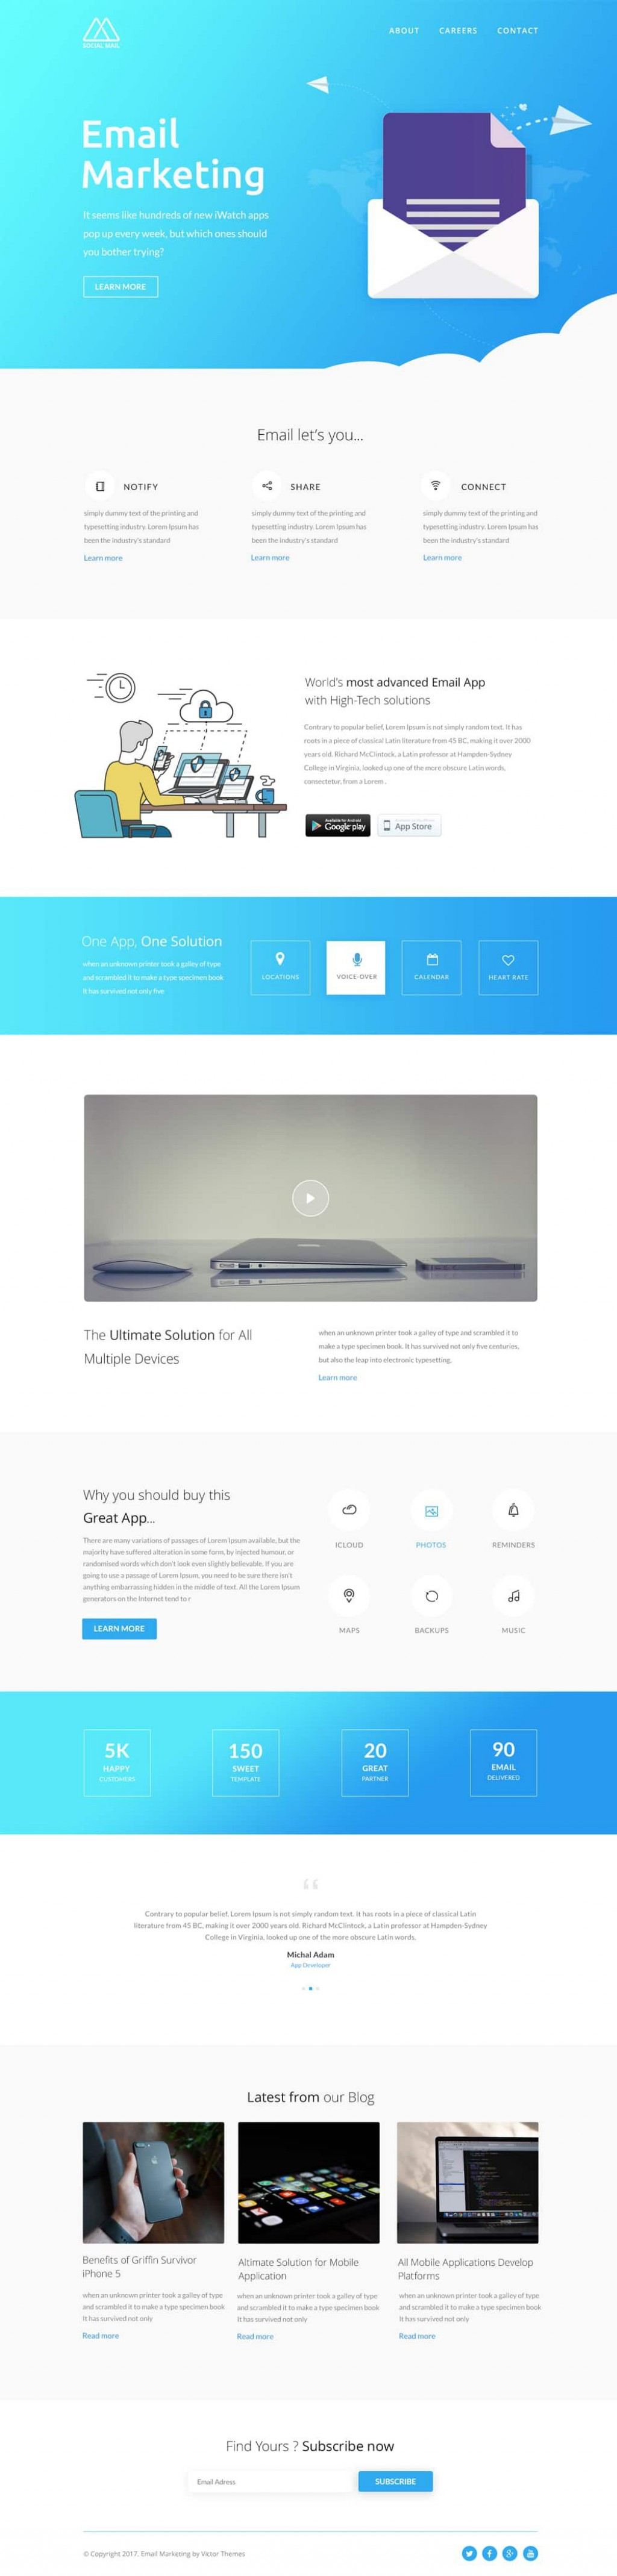 002 Stunning Free Email Newsletter Template Download Image  Busines PsdLarge